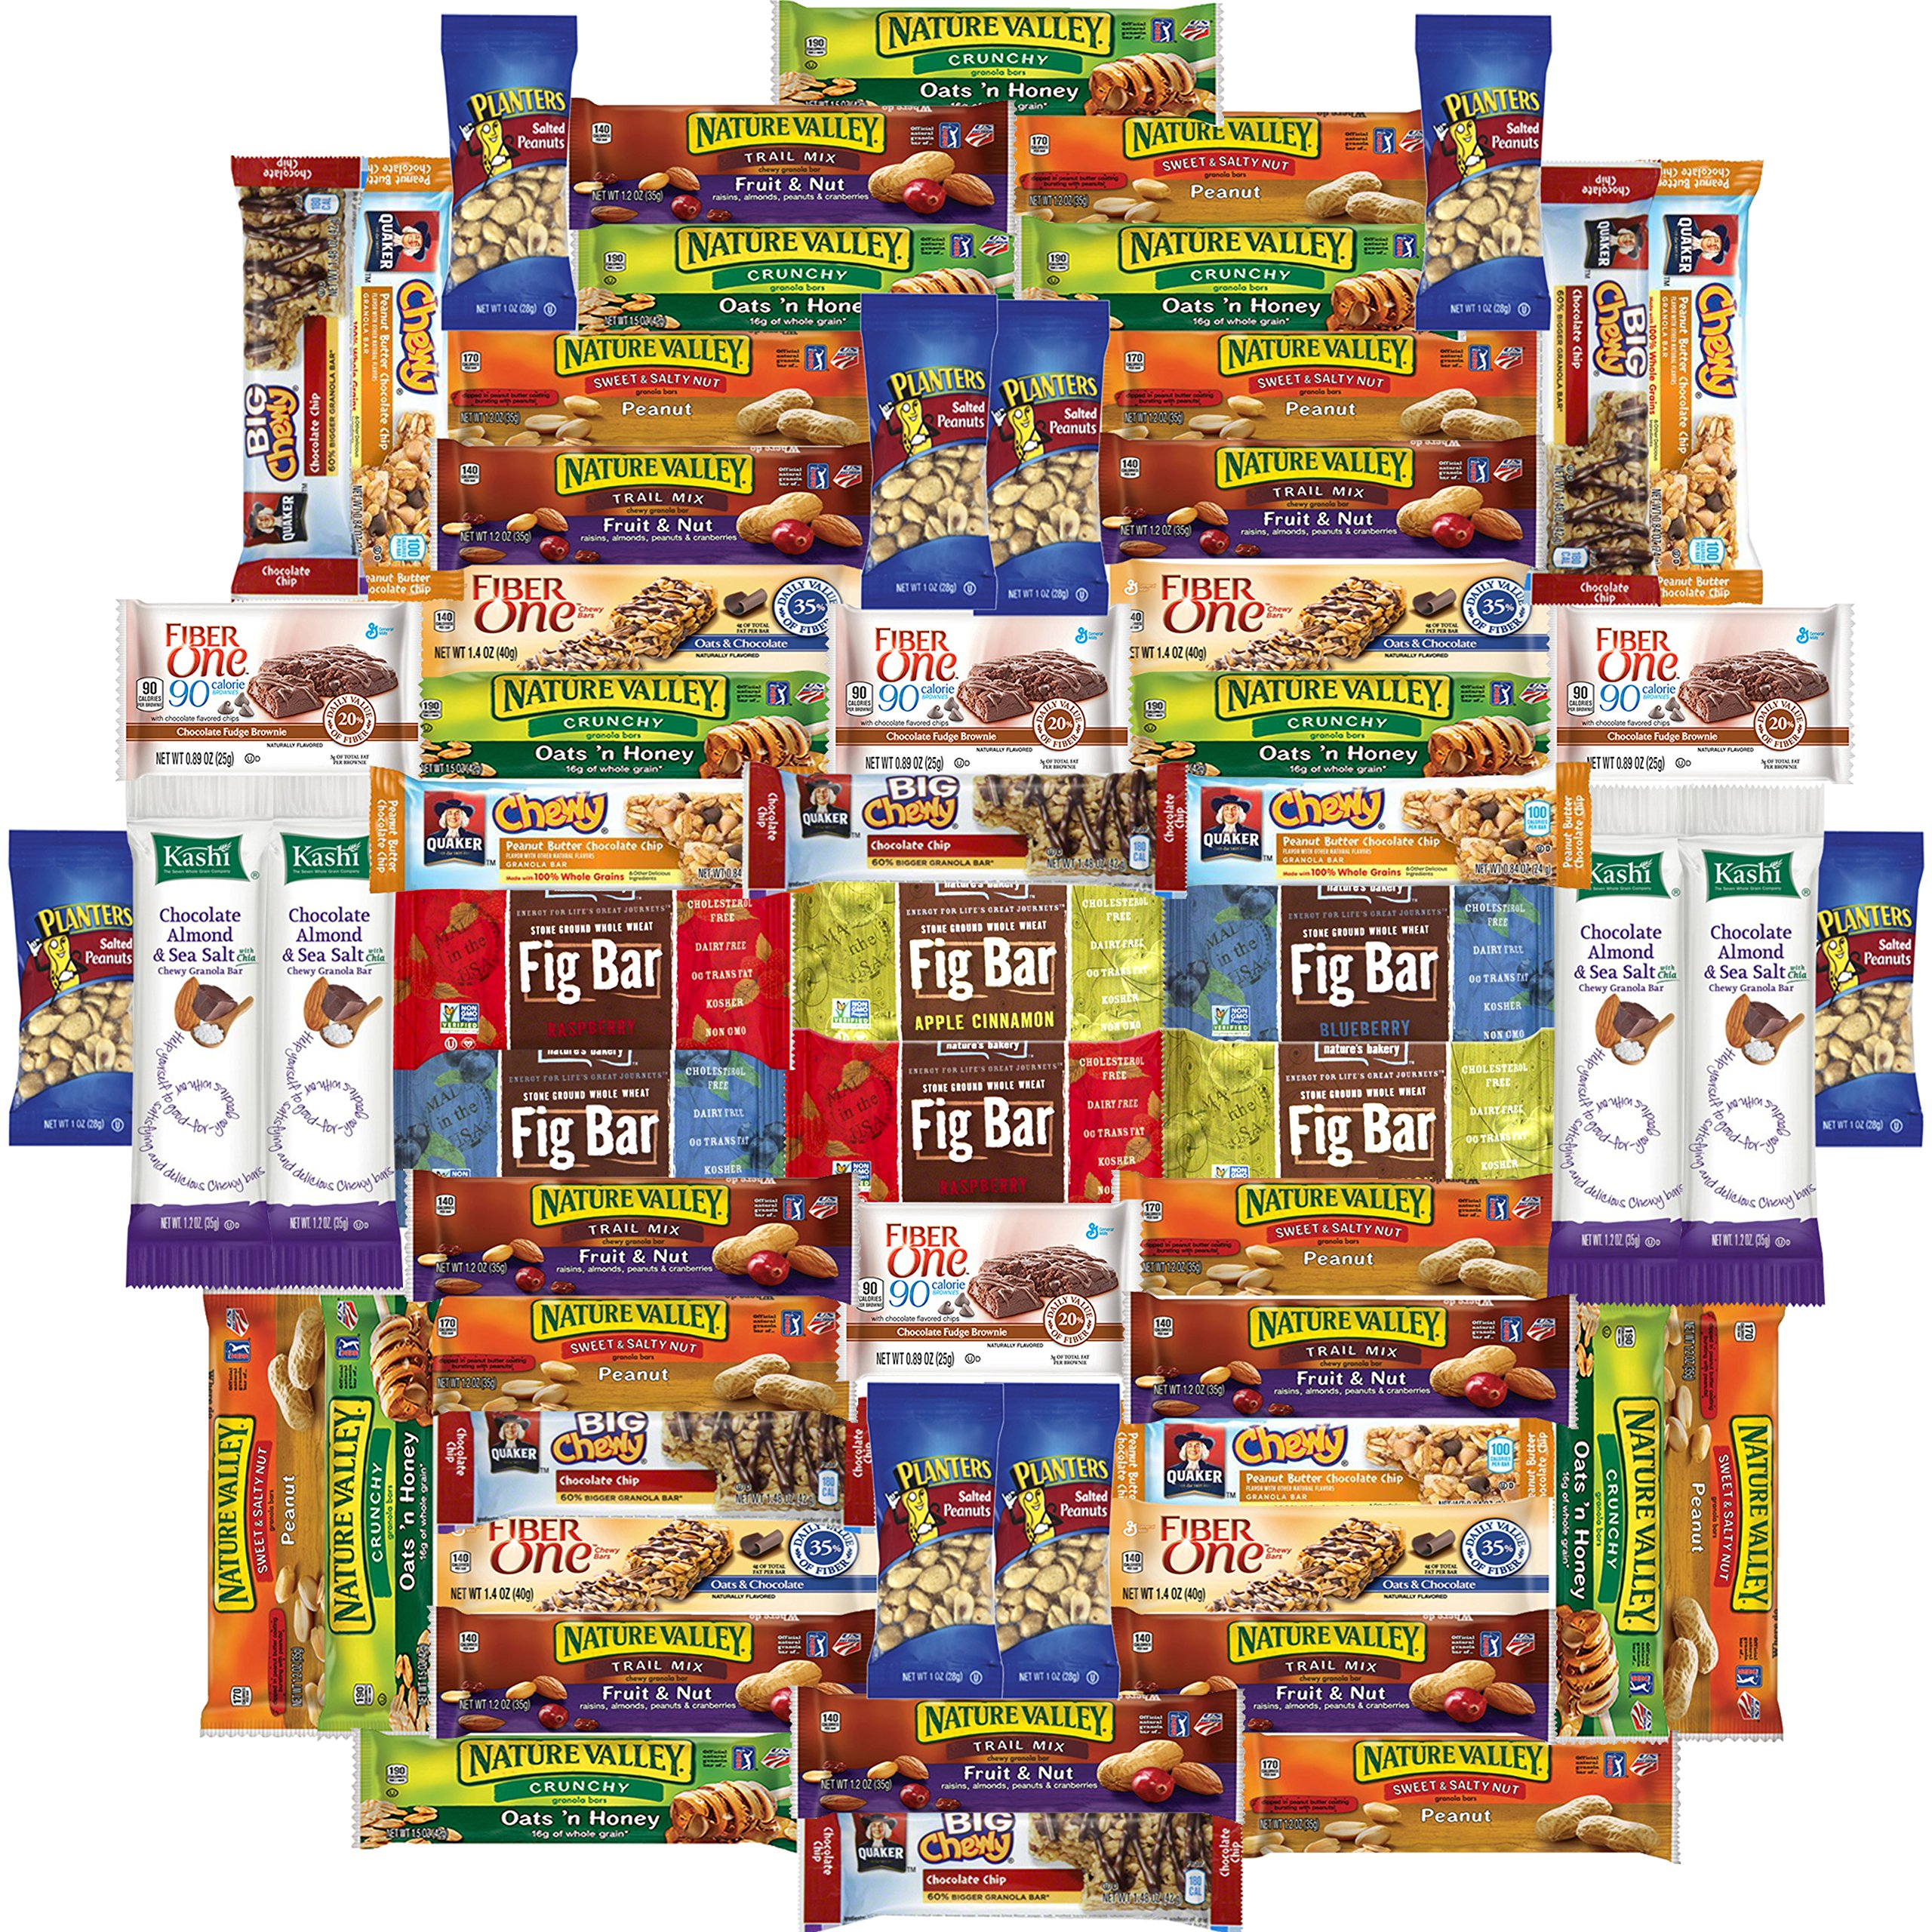 Healthy Bars & Nuts Care Package Variety Pack Bulk Sampler Includes Kashi, Fiber One, Quaker, Fig Bars, Nature Valley, Planters & More (60 Count)